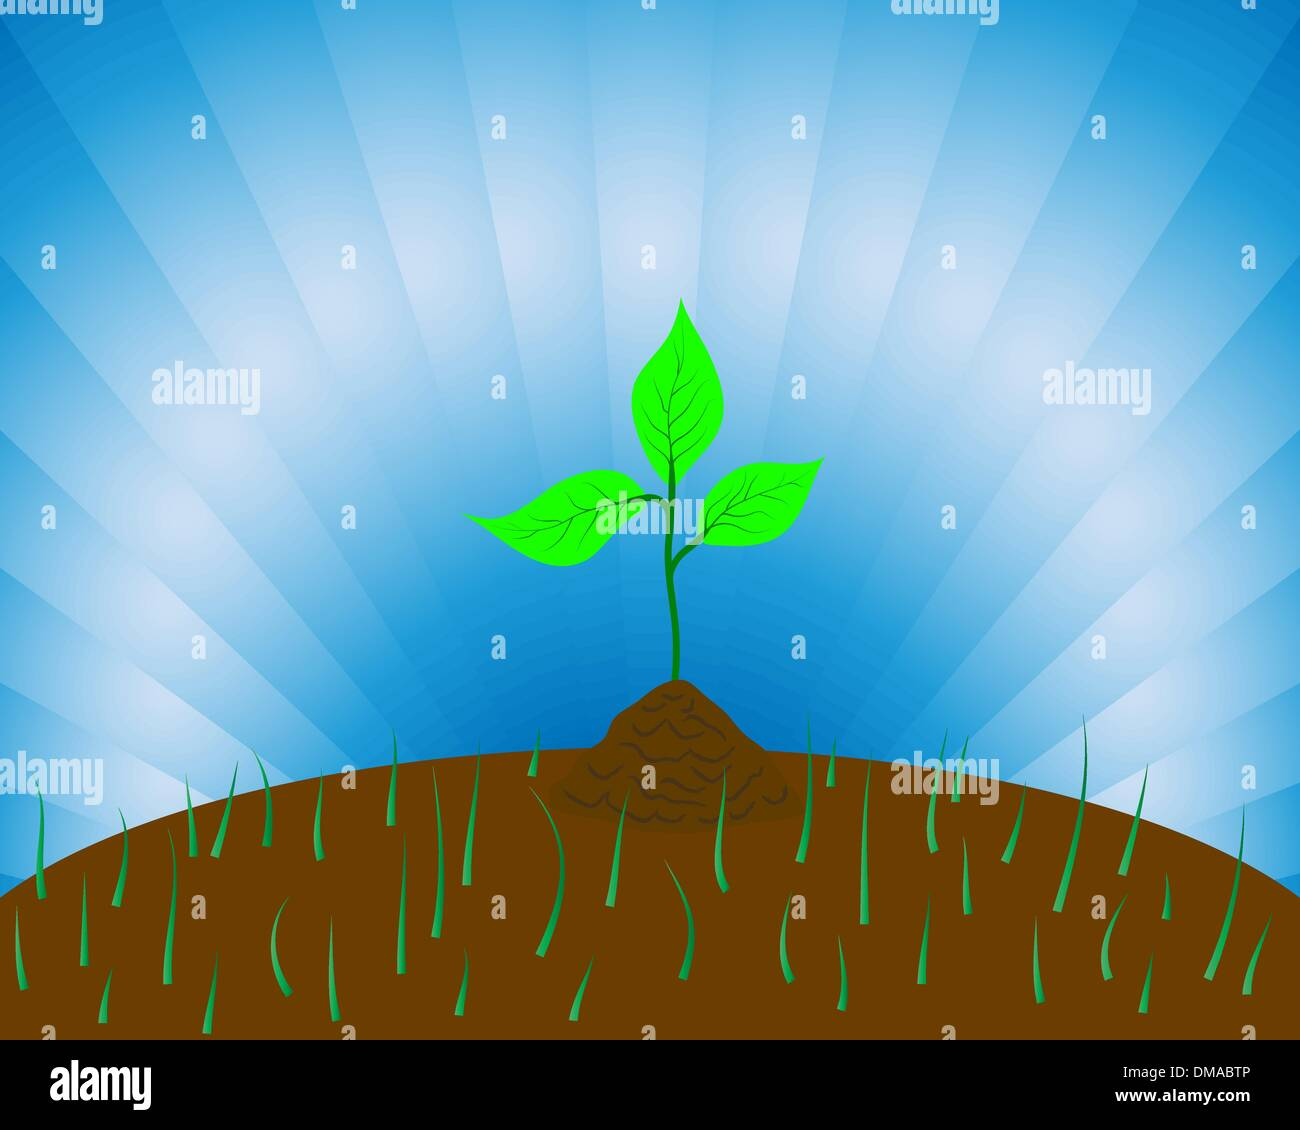 sprouts - Stock Vector